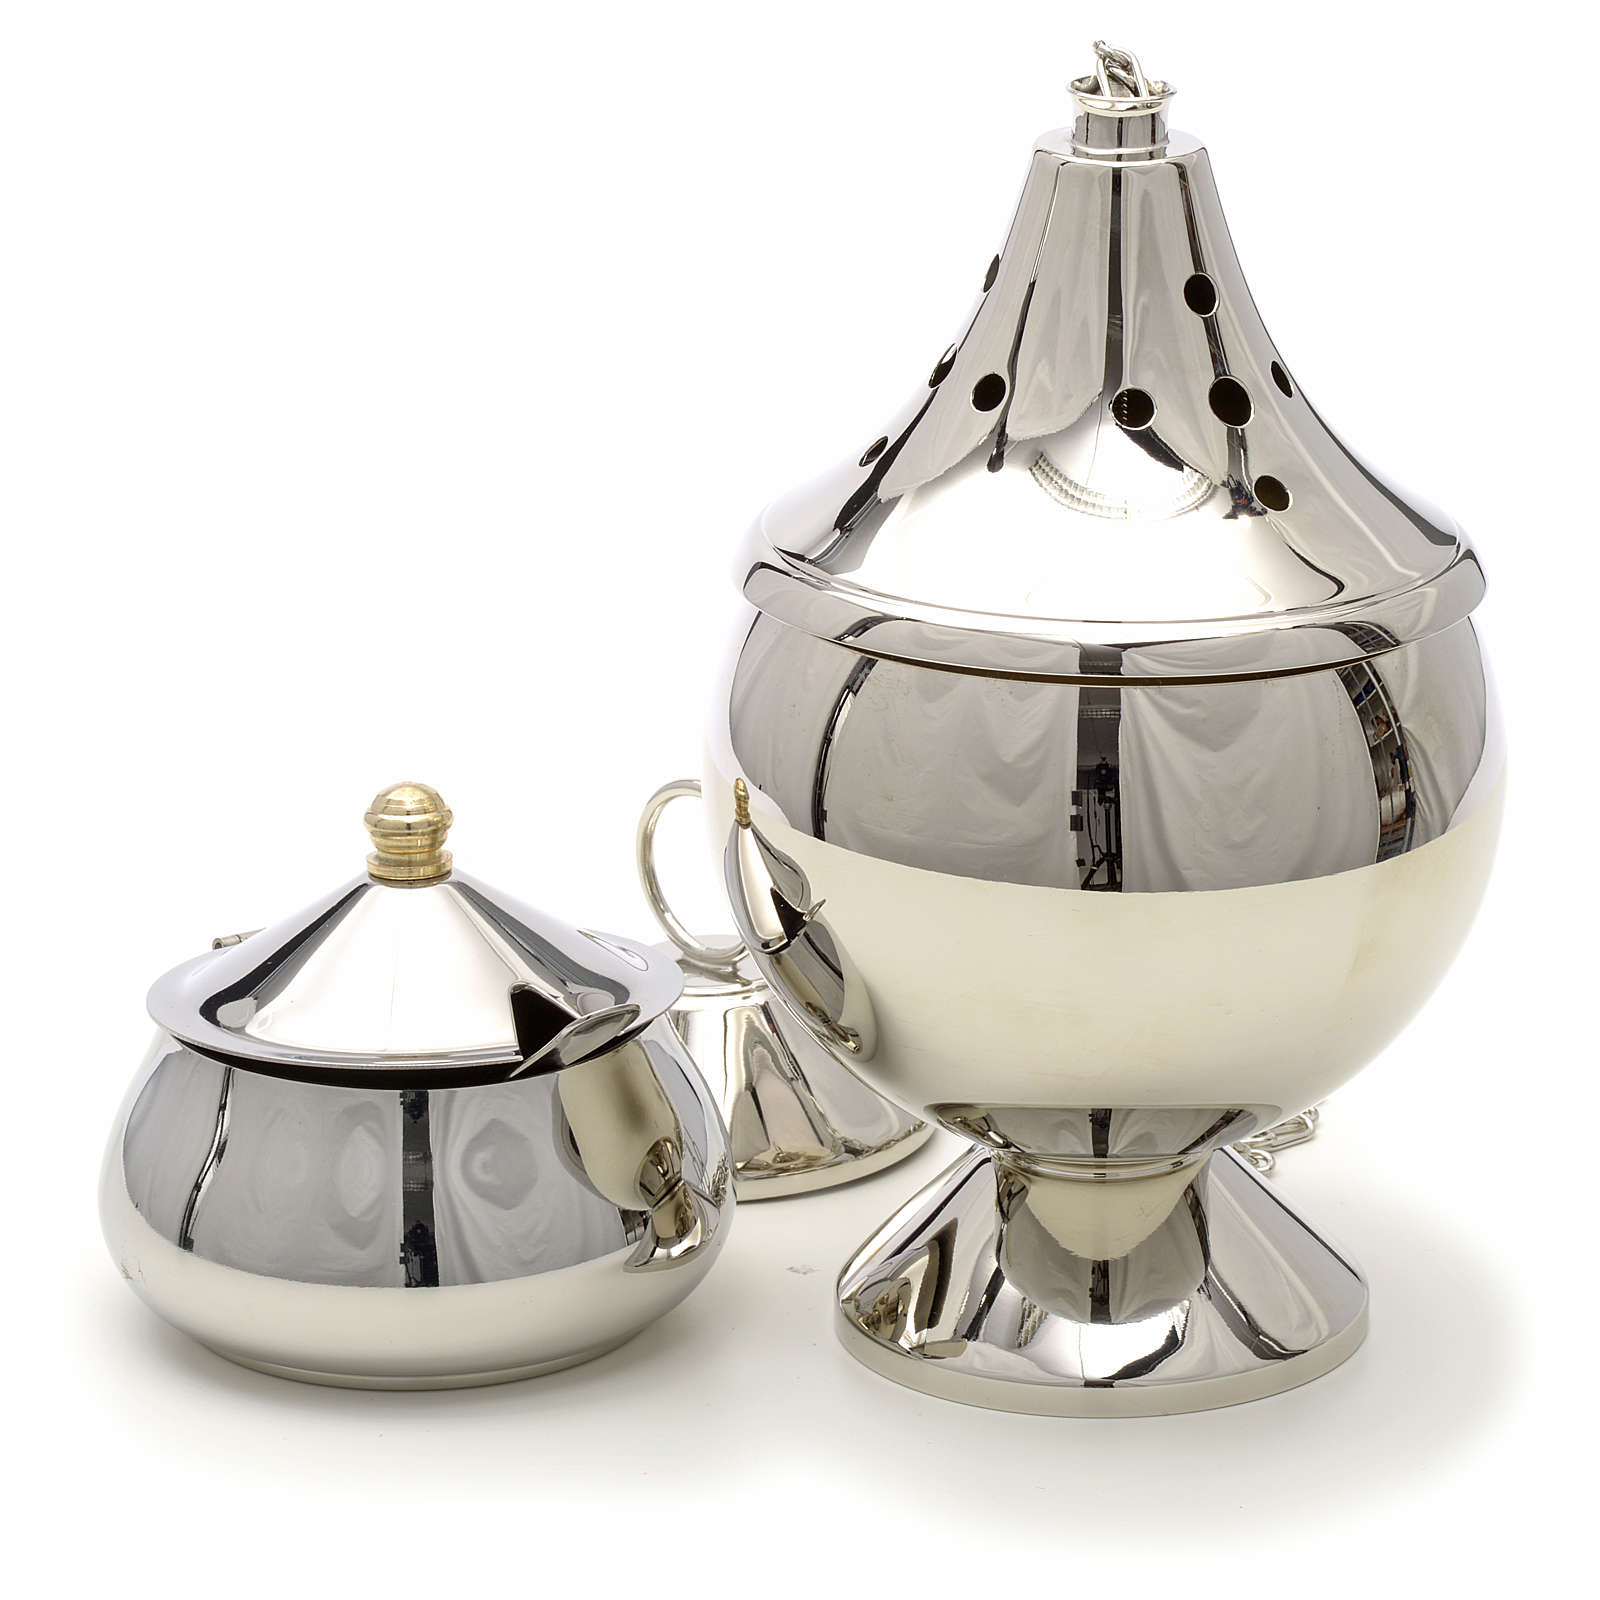 Censer and boat nickel plated brass 3